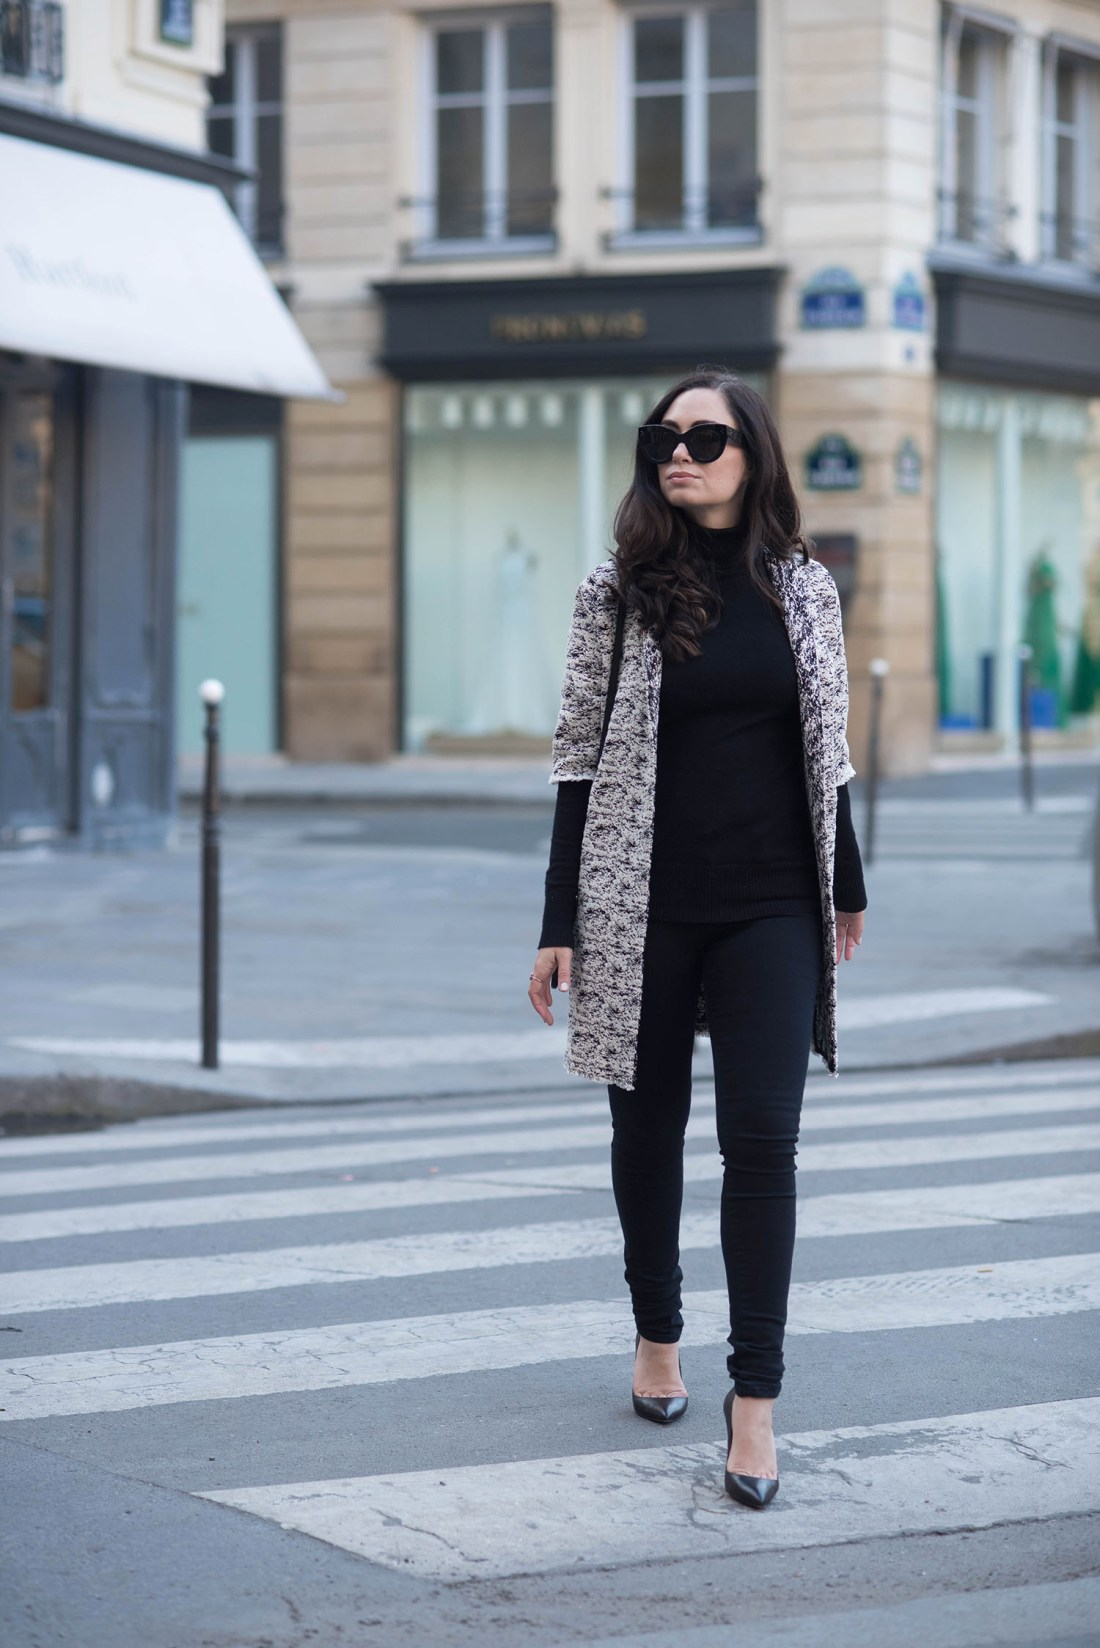 Fashion blogger Cee Fardoe of Coco & Vera walks at Place des Victoires in Paris wearing a Floriane Fosso coat and Christian Louboutin Pigalle pumps